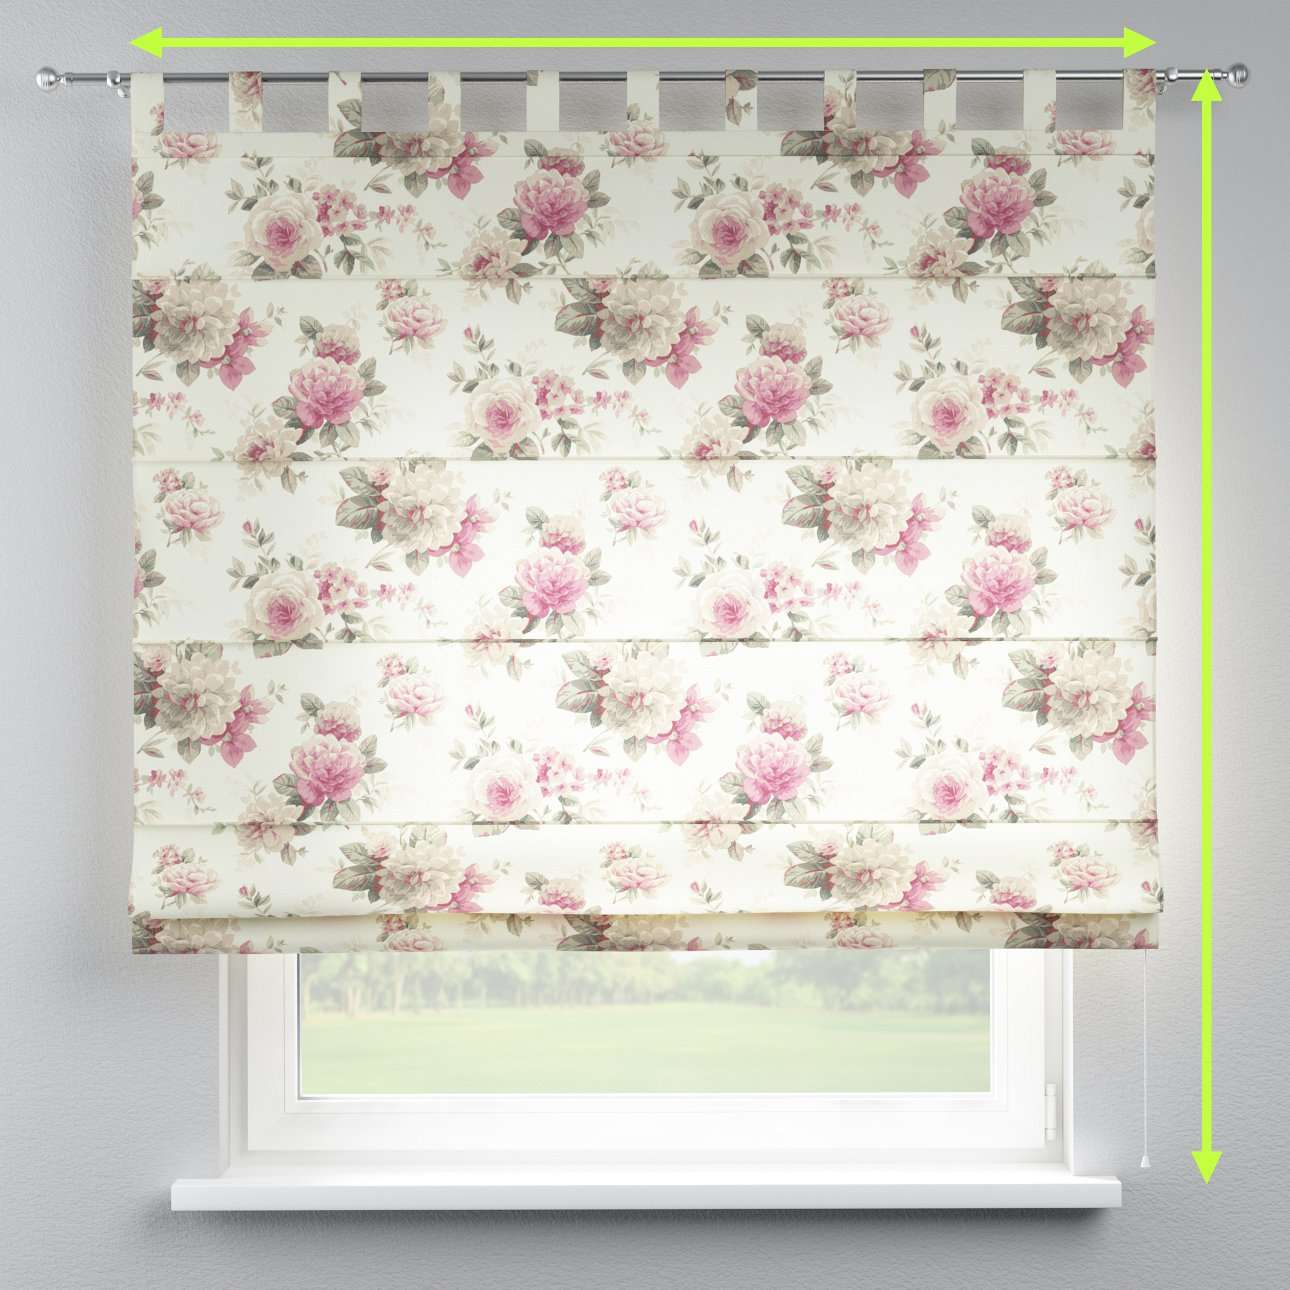 Verona tab top roman blind in collection Mirella, fabric: 141-07